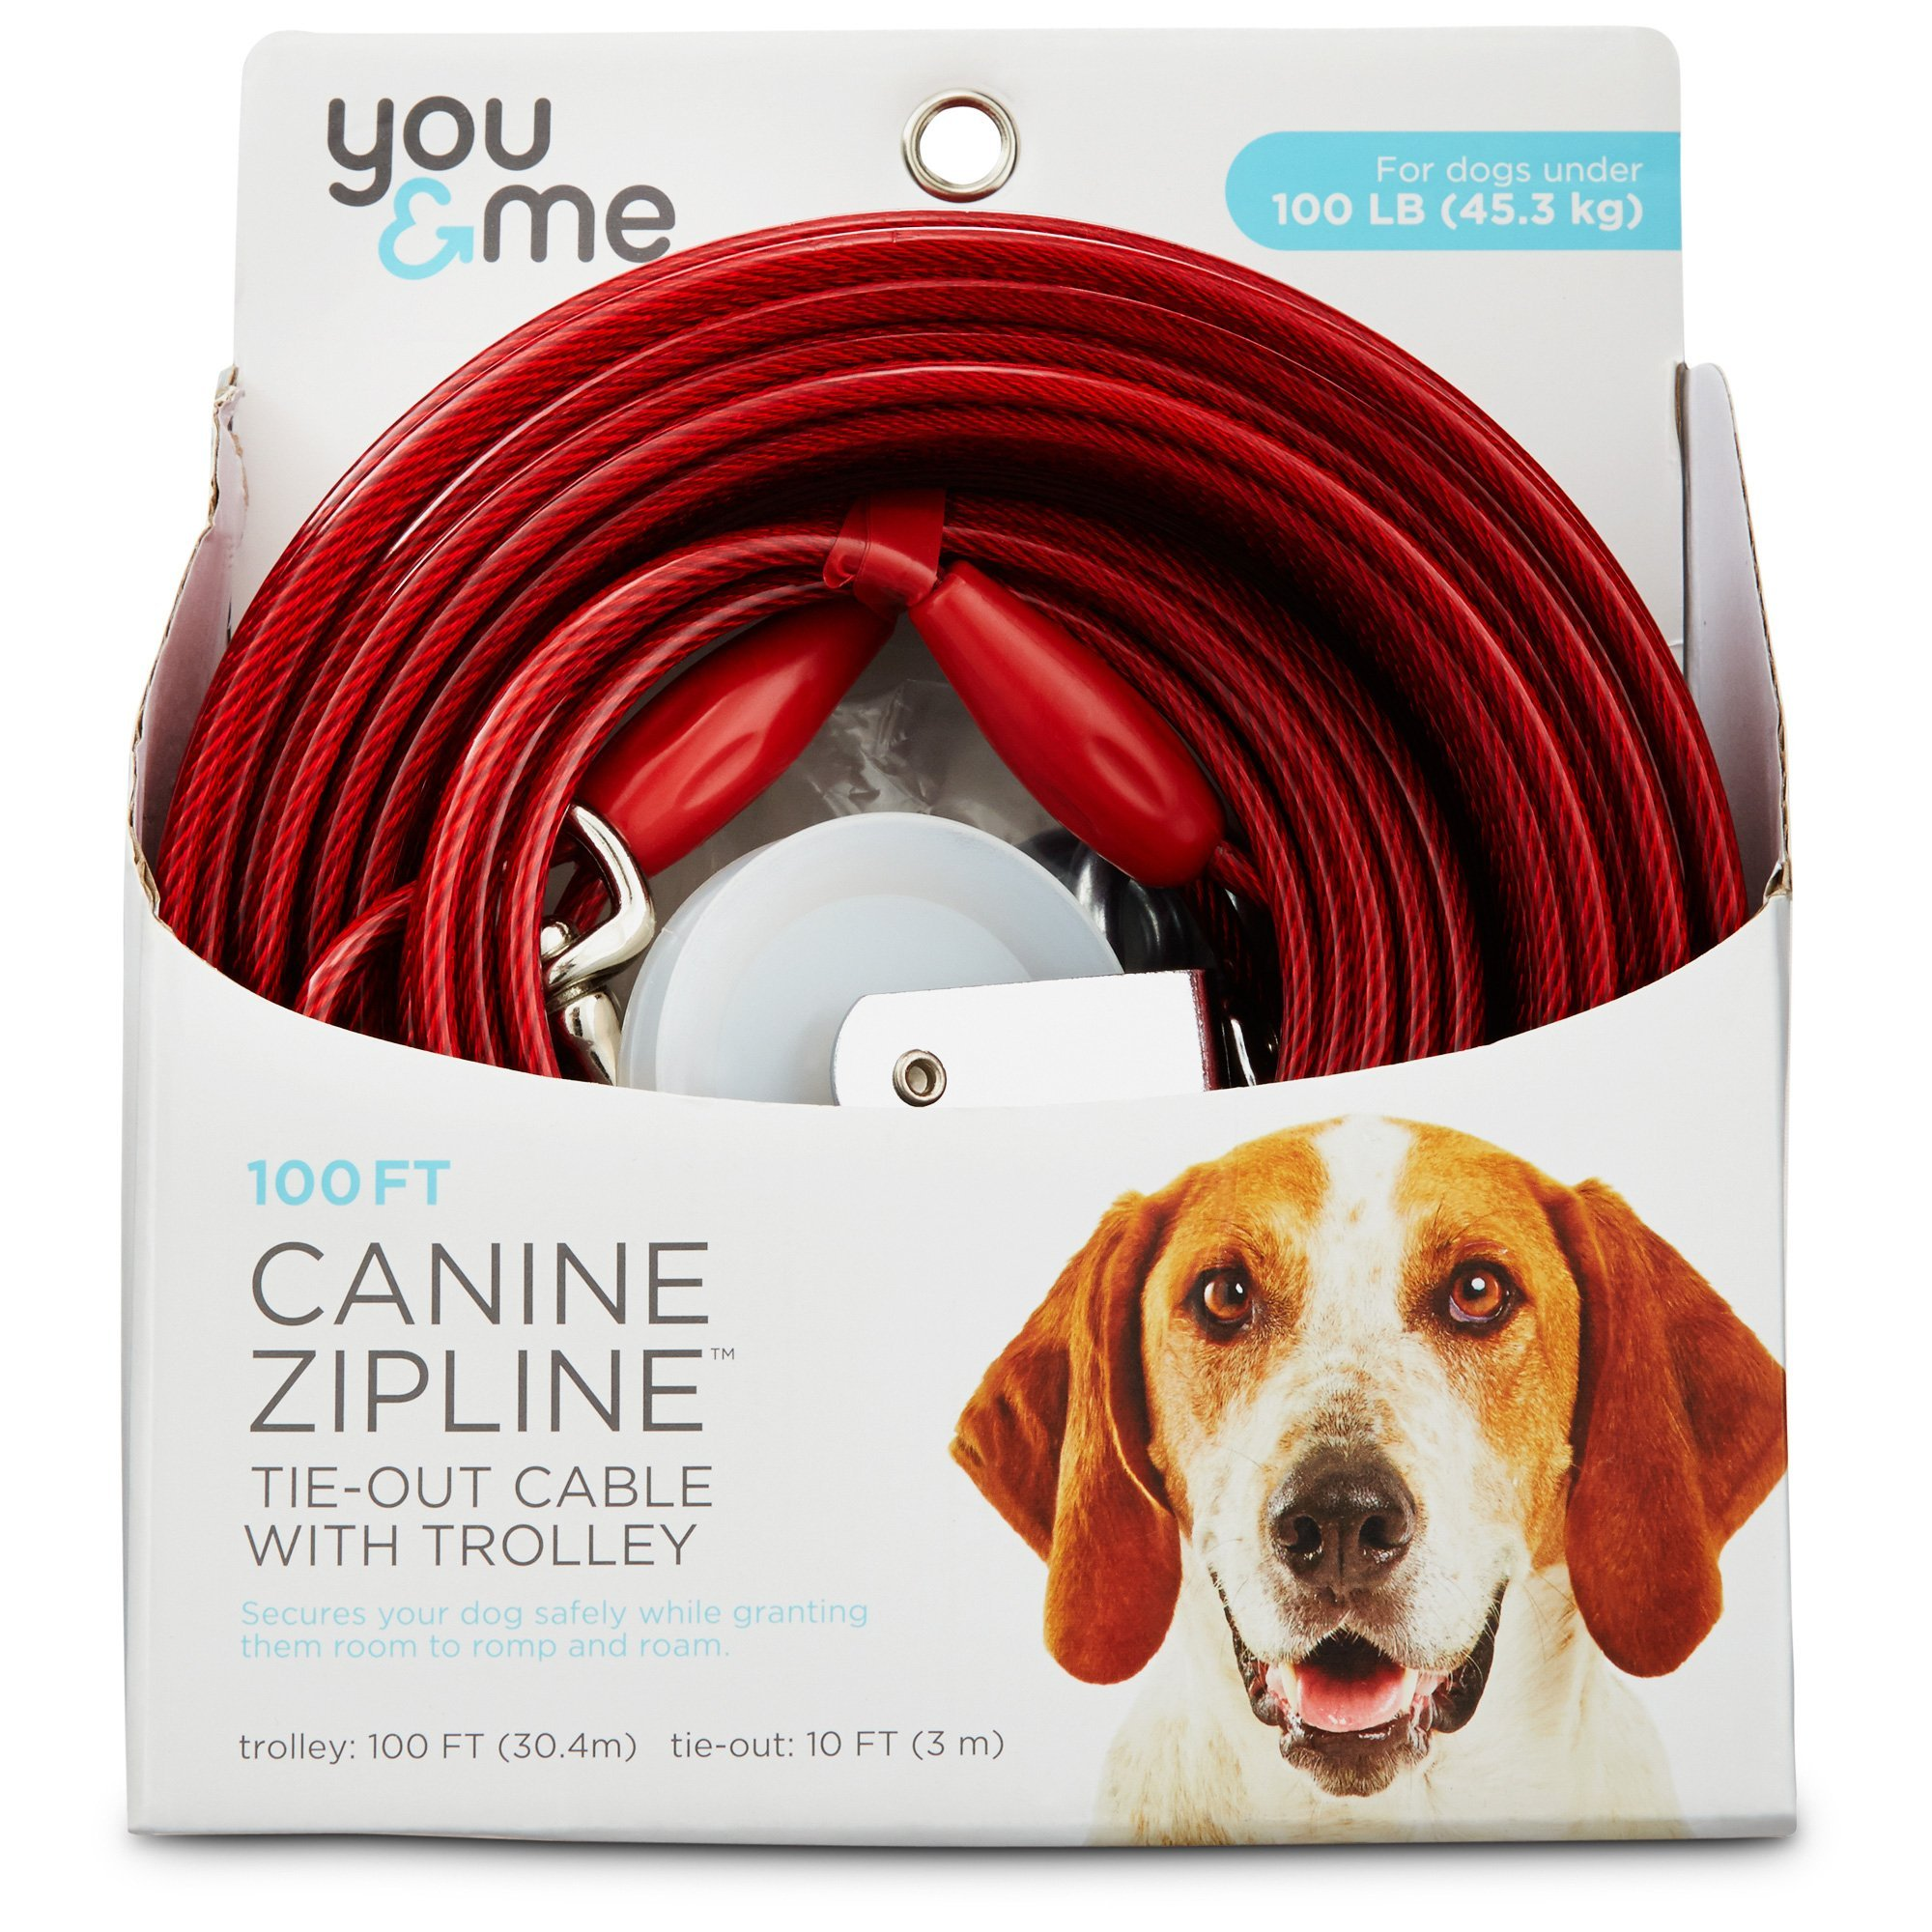 You & Me Red Large Canine Zipline Dog Tie-Out Cable with Trolley, 100'